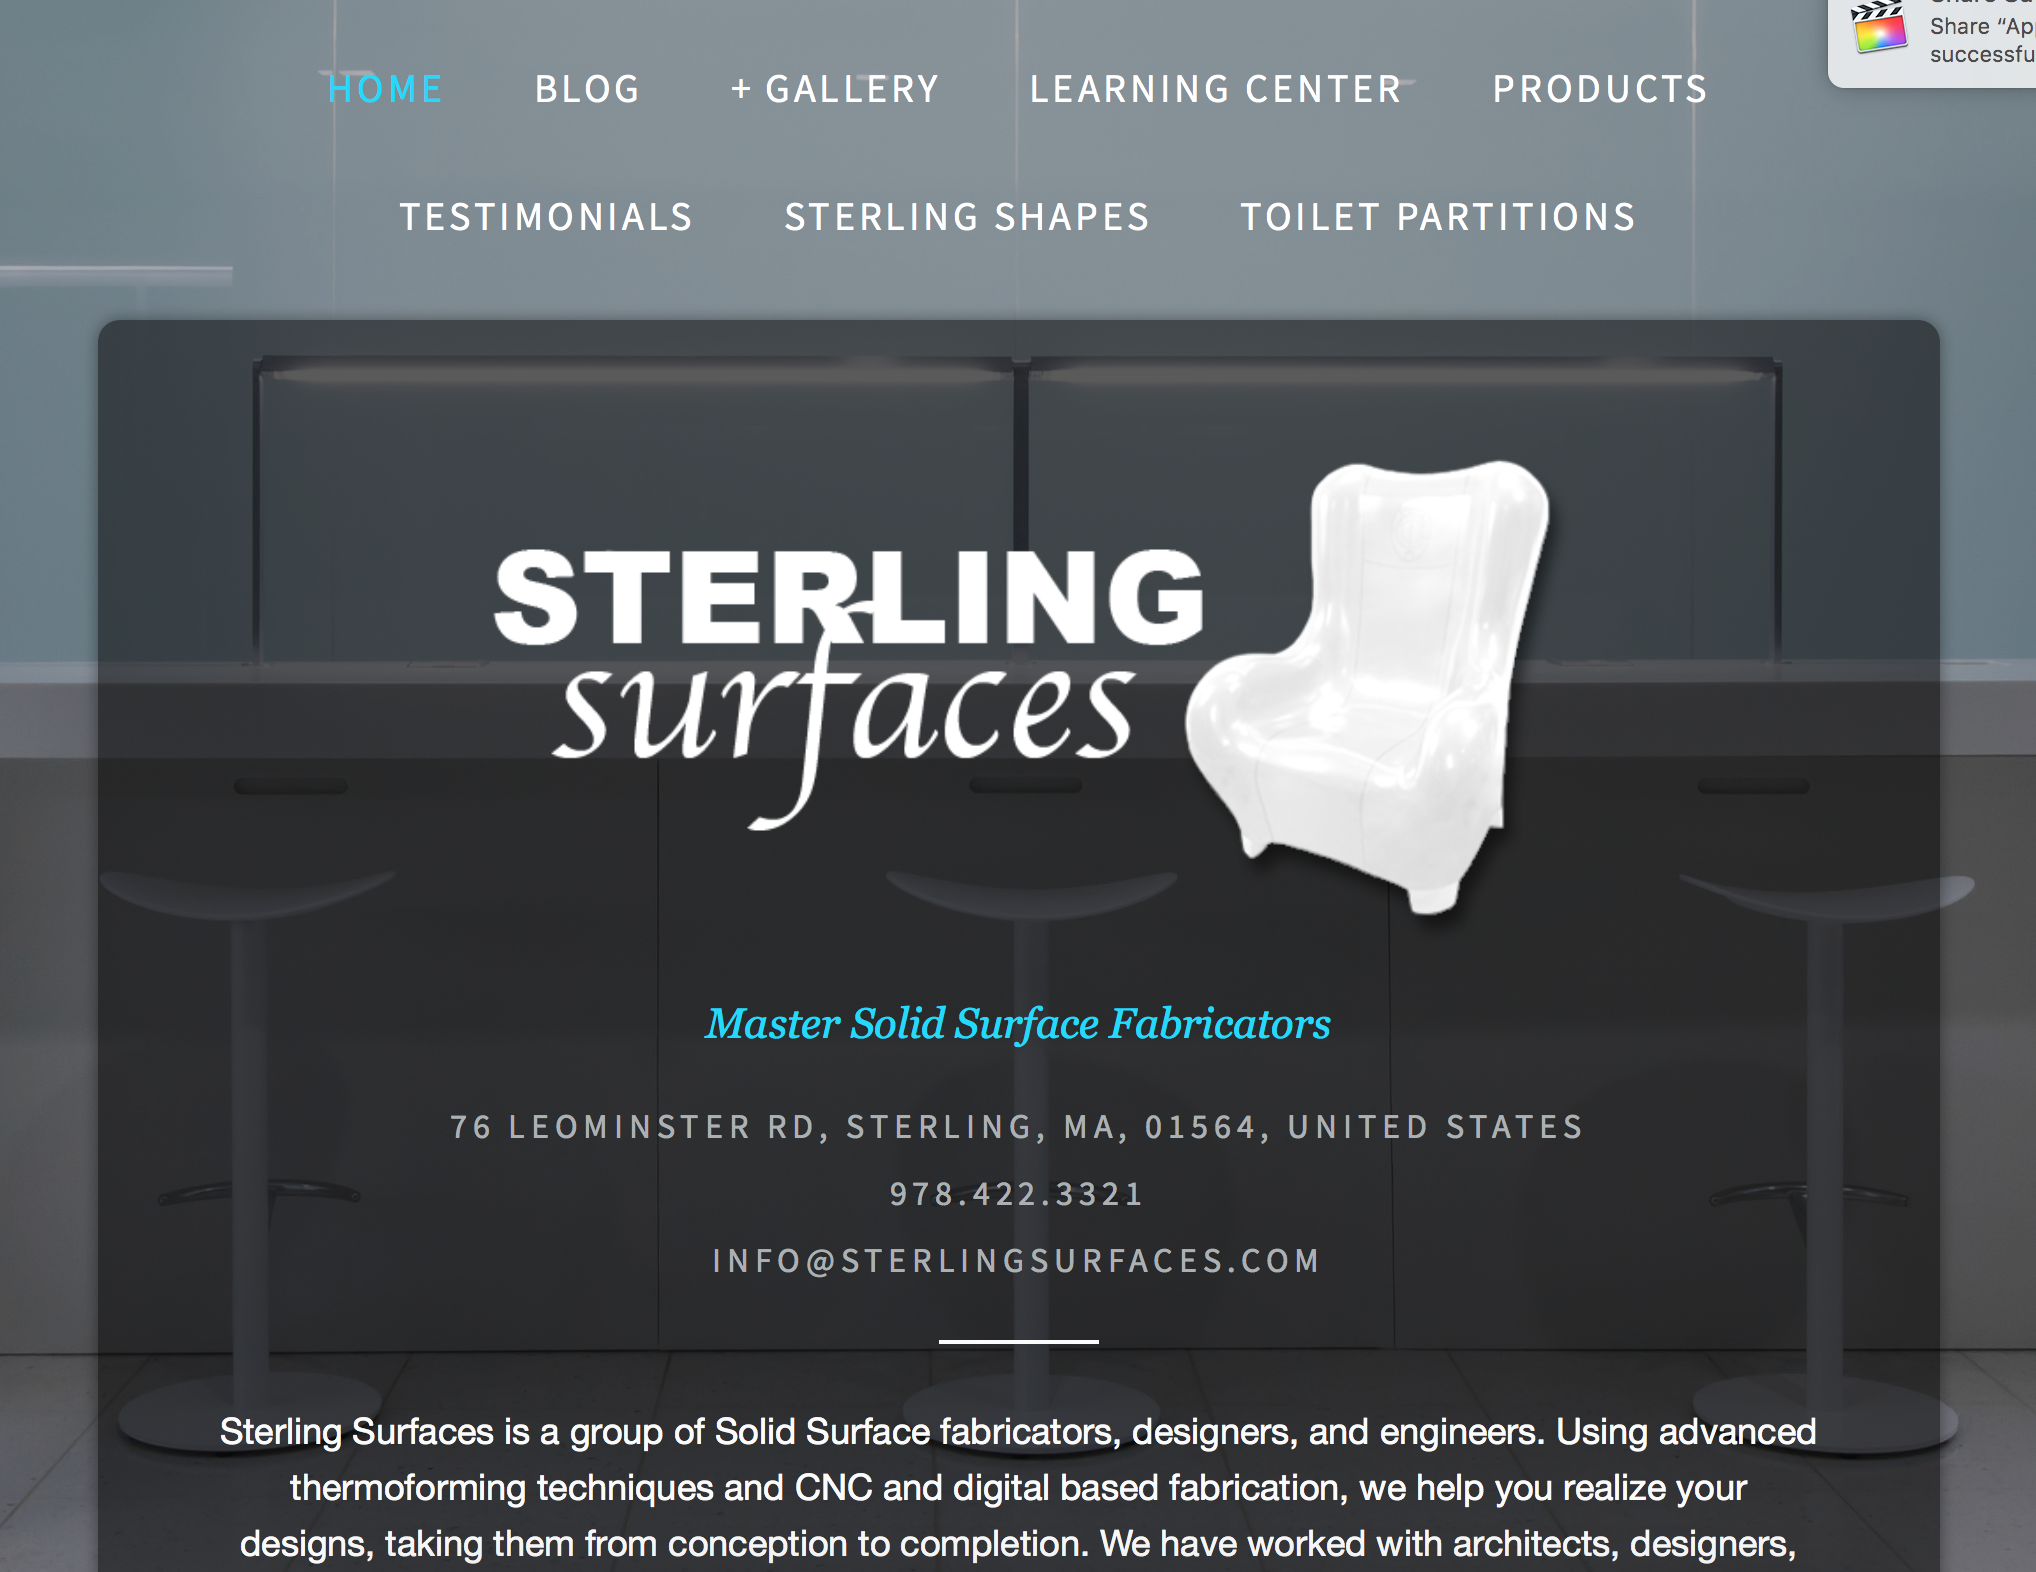 Sterling Surfaces